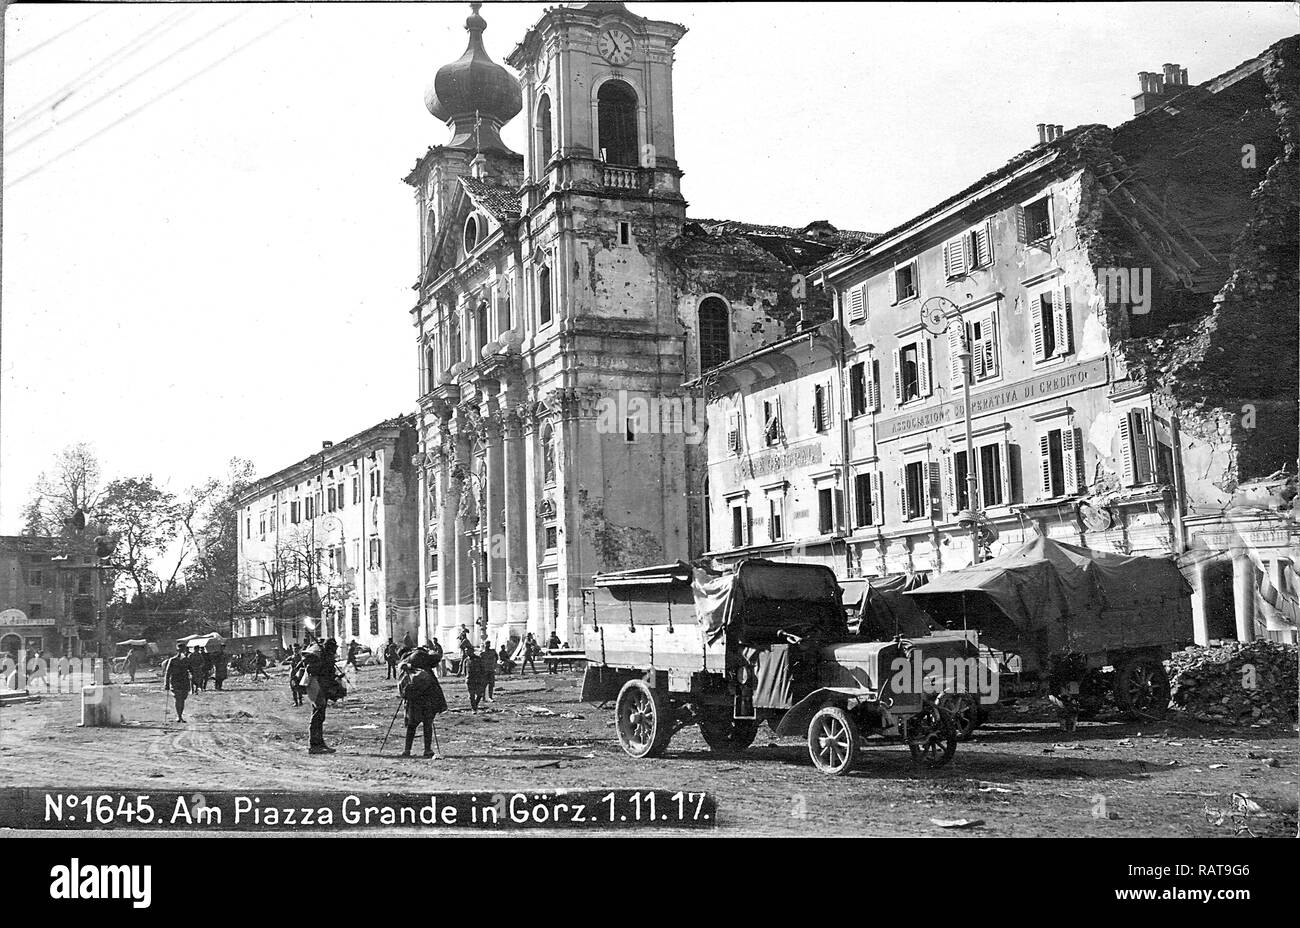 Austro-hungarian soldiers on the main square in Gorizia - Italy, after the occupation in 1917 (1. 11. 1917) - Stock Image